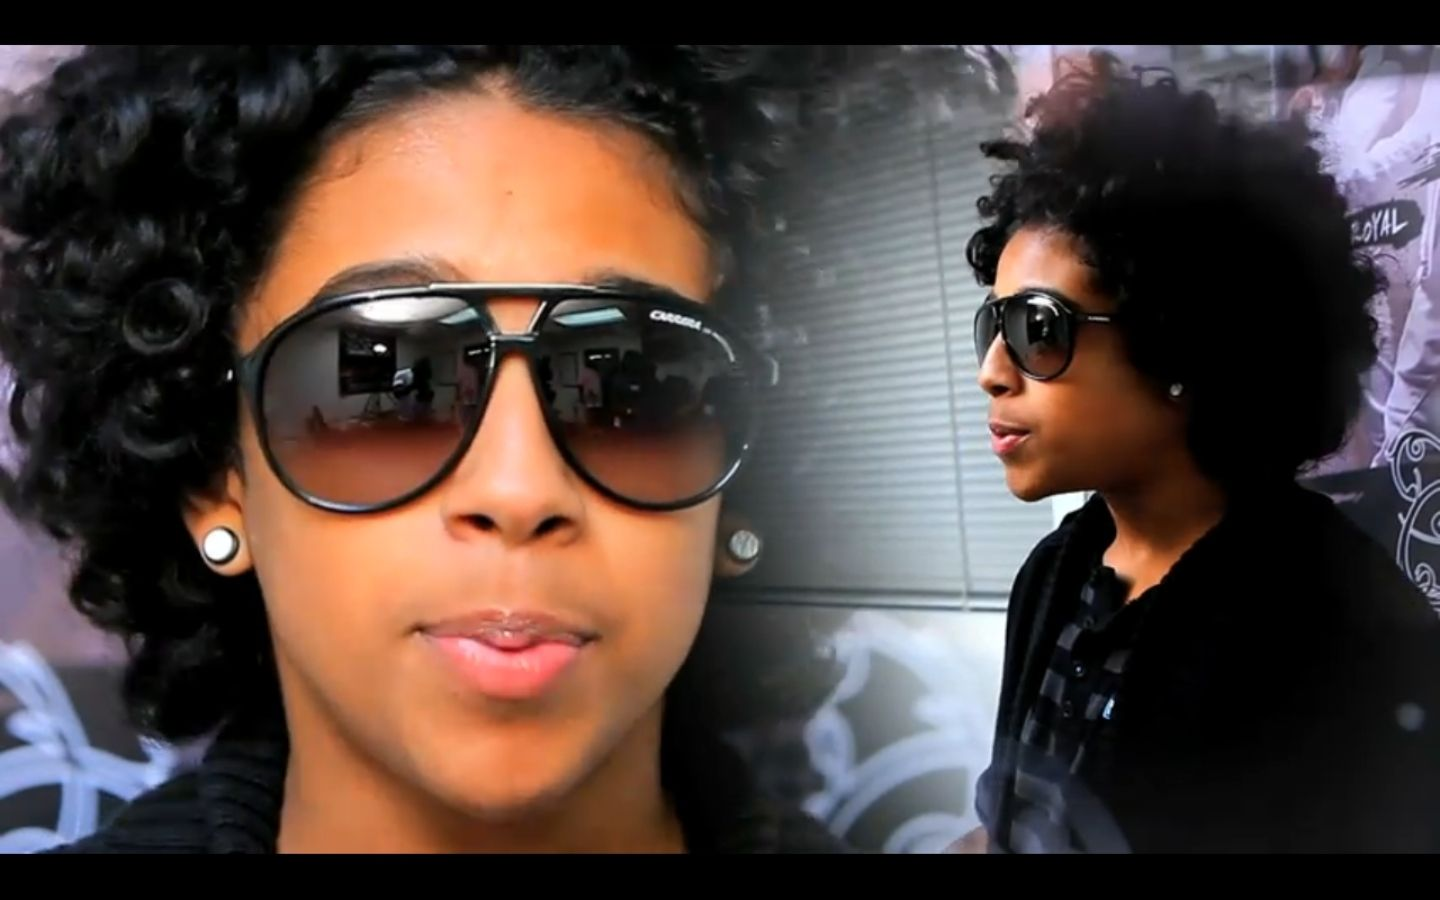 Ray Mindless Behavior Wallpaper Princeton